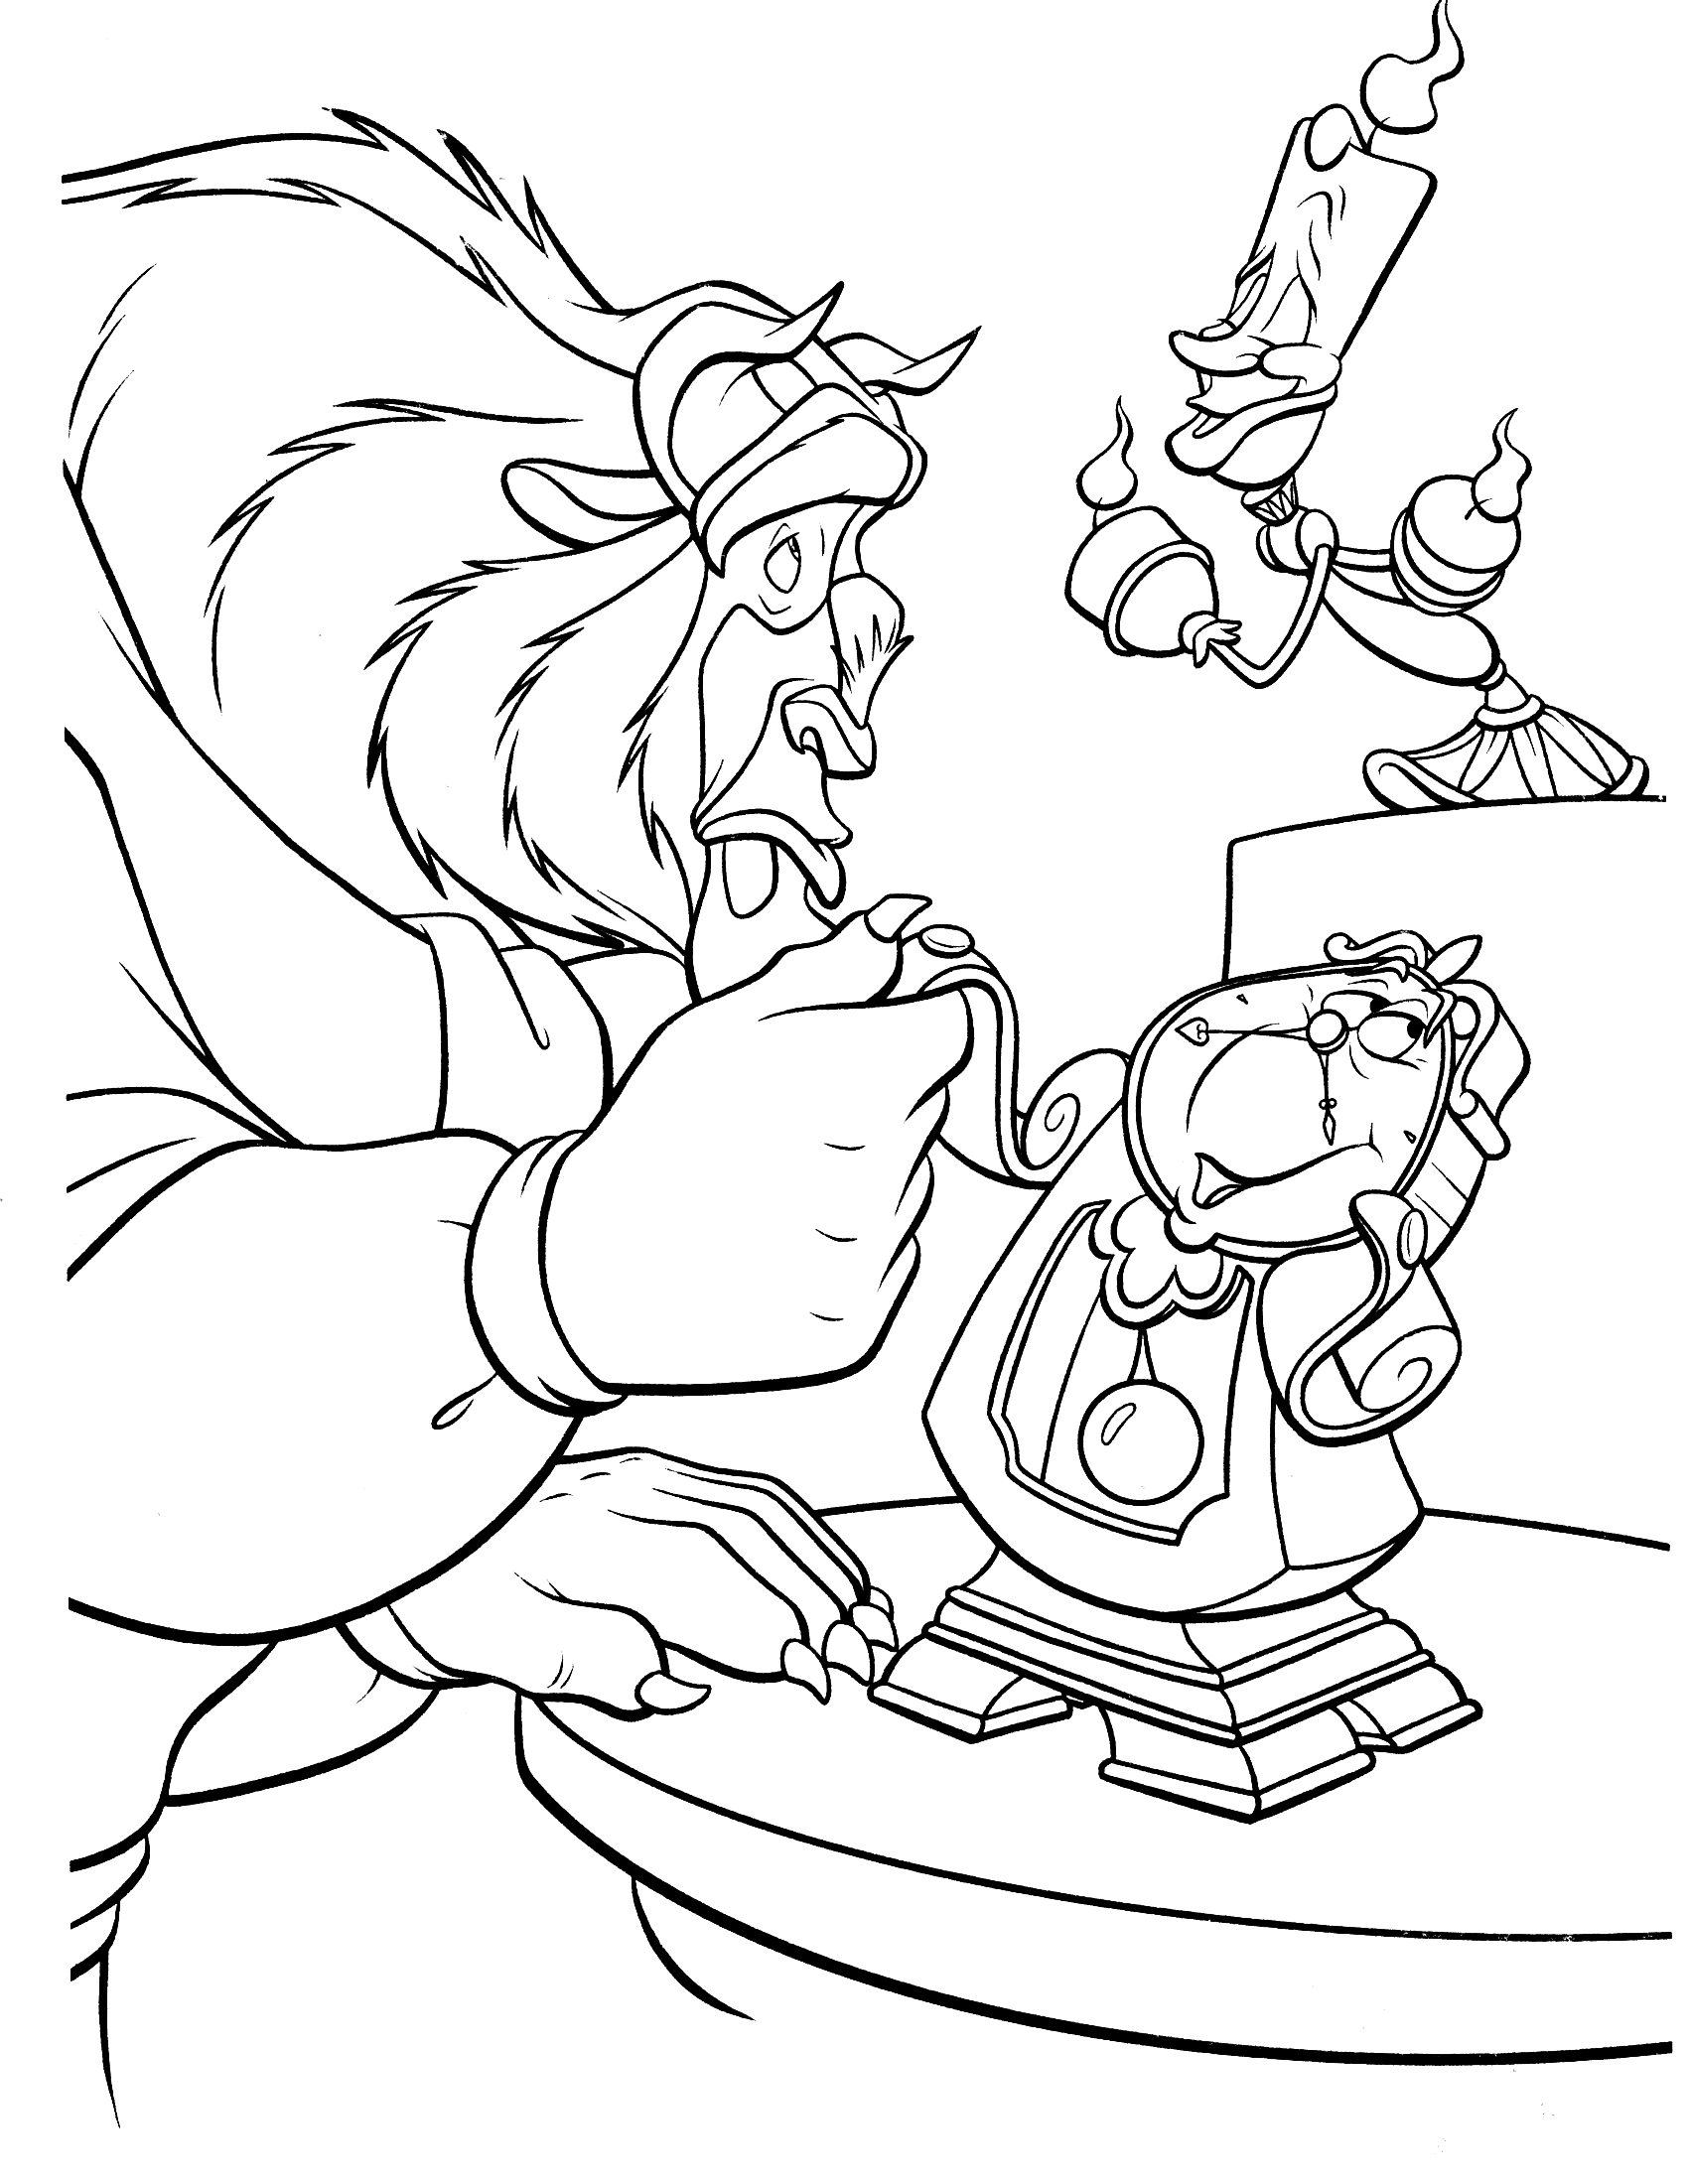 beauty and the beast colouring page beauty and the beast coloring pages beauty beast page and the colouring